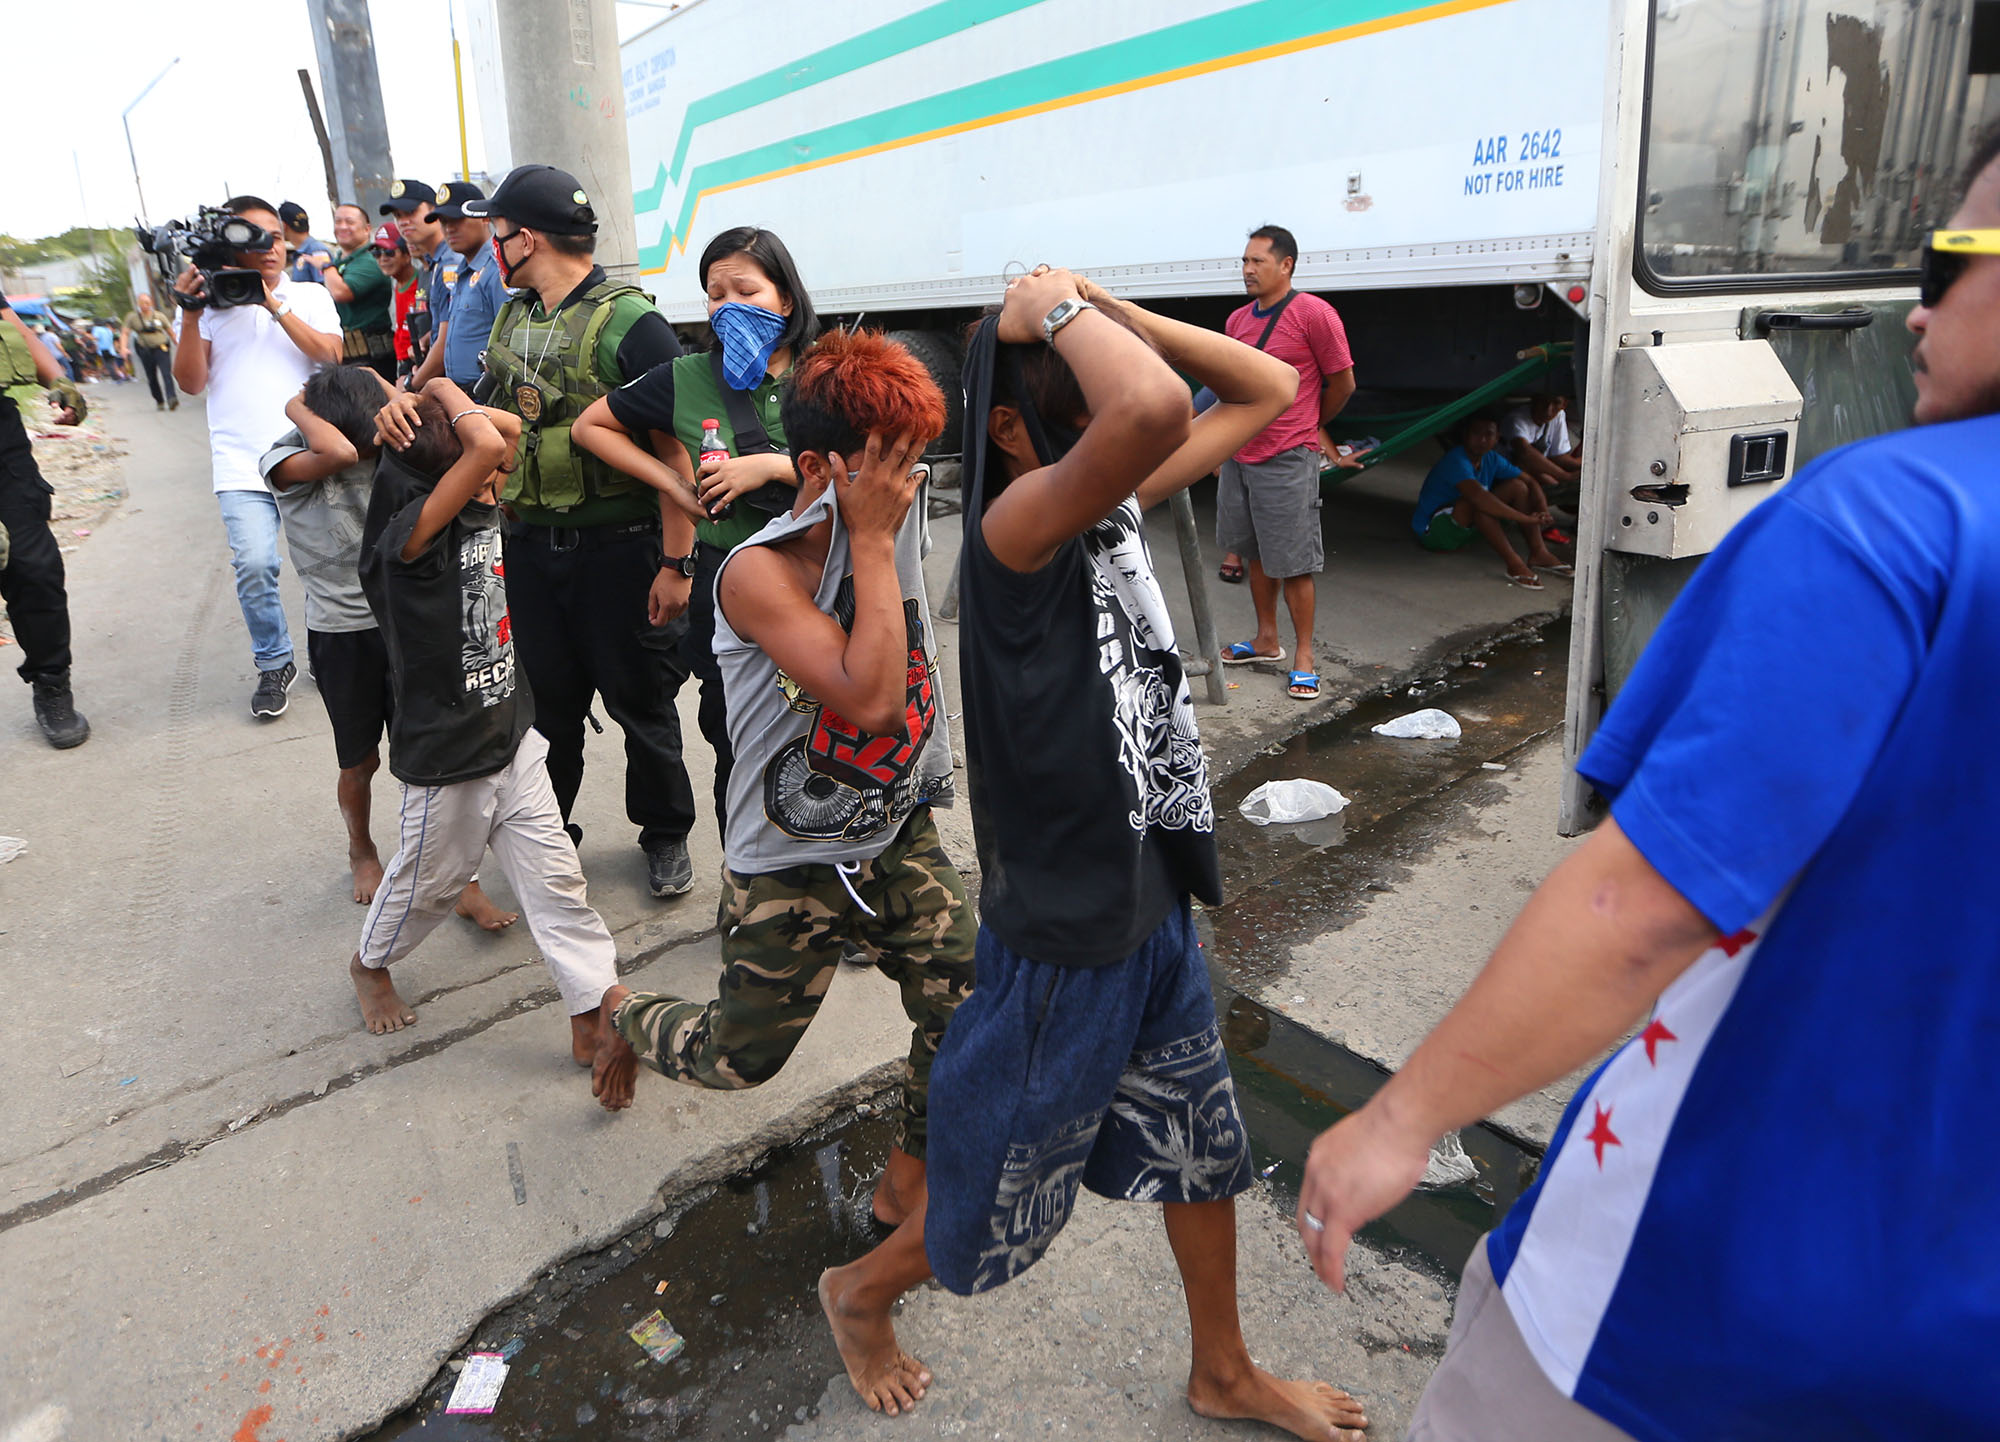 ROUNDUP. Philippine Drug Enforcement Agency agents herd children found in the vicinity of a drug raid at the Navotas Fish Port in Navotas on January 16, 2019. The operation was documented by media. Photo by Inoue Jaena/Rappler